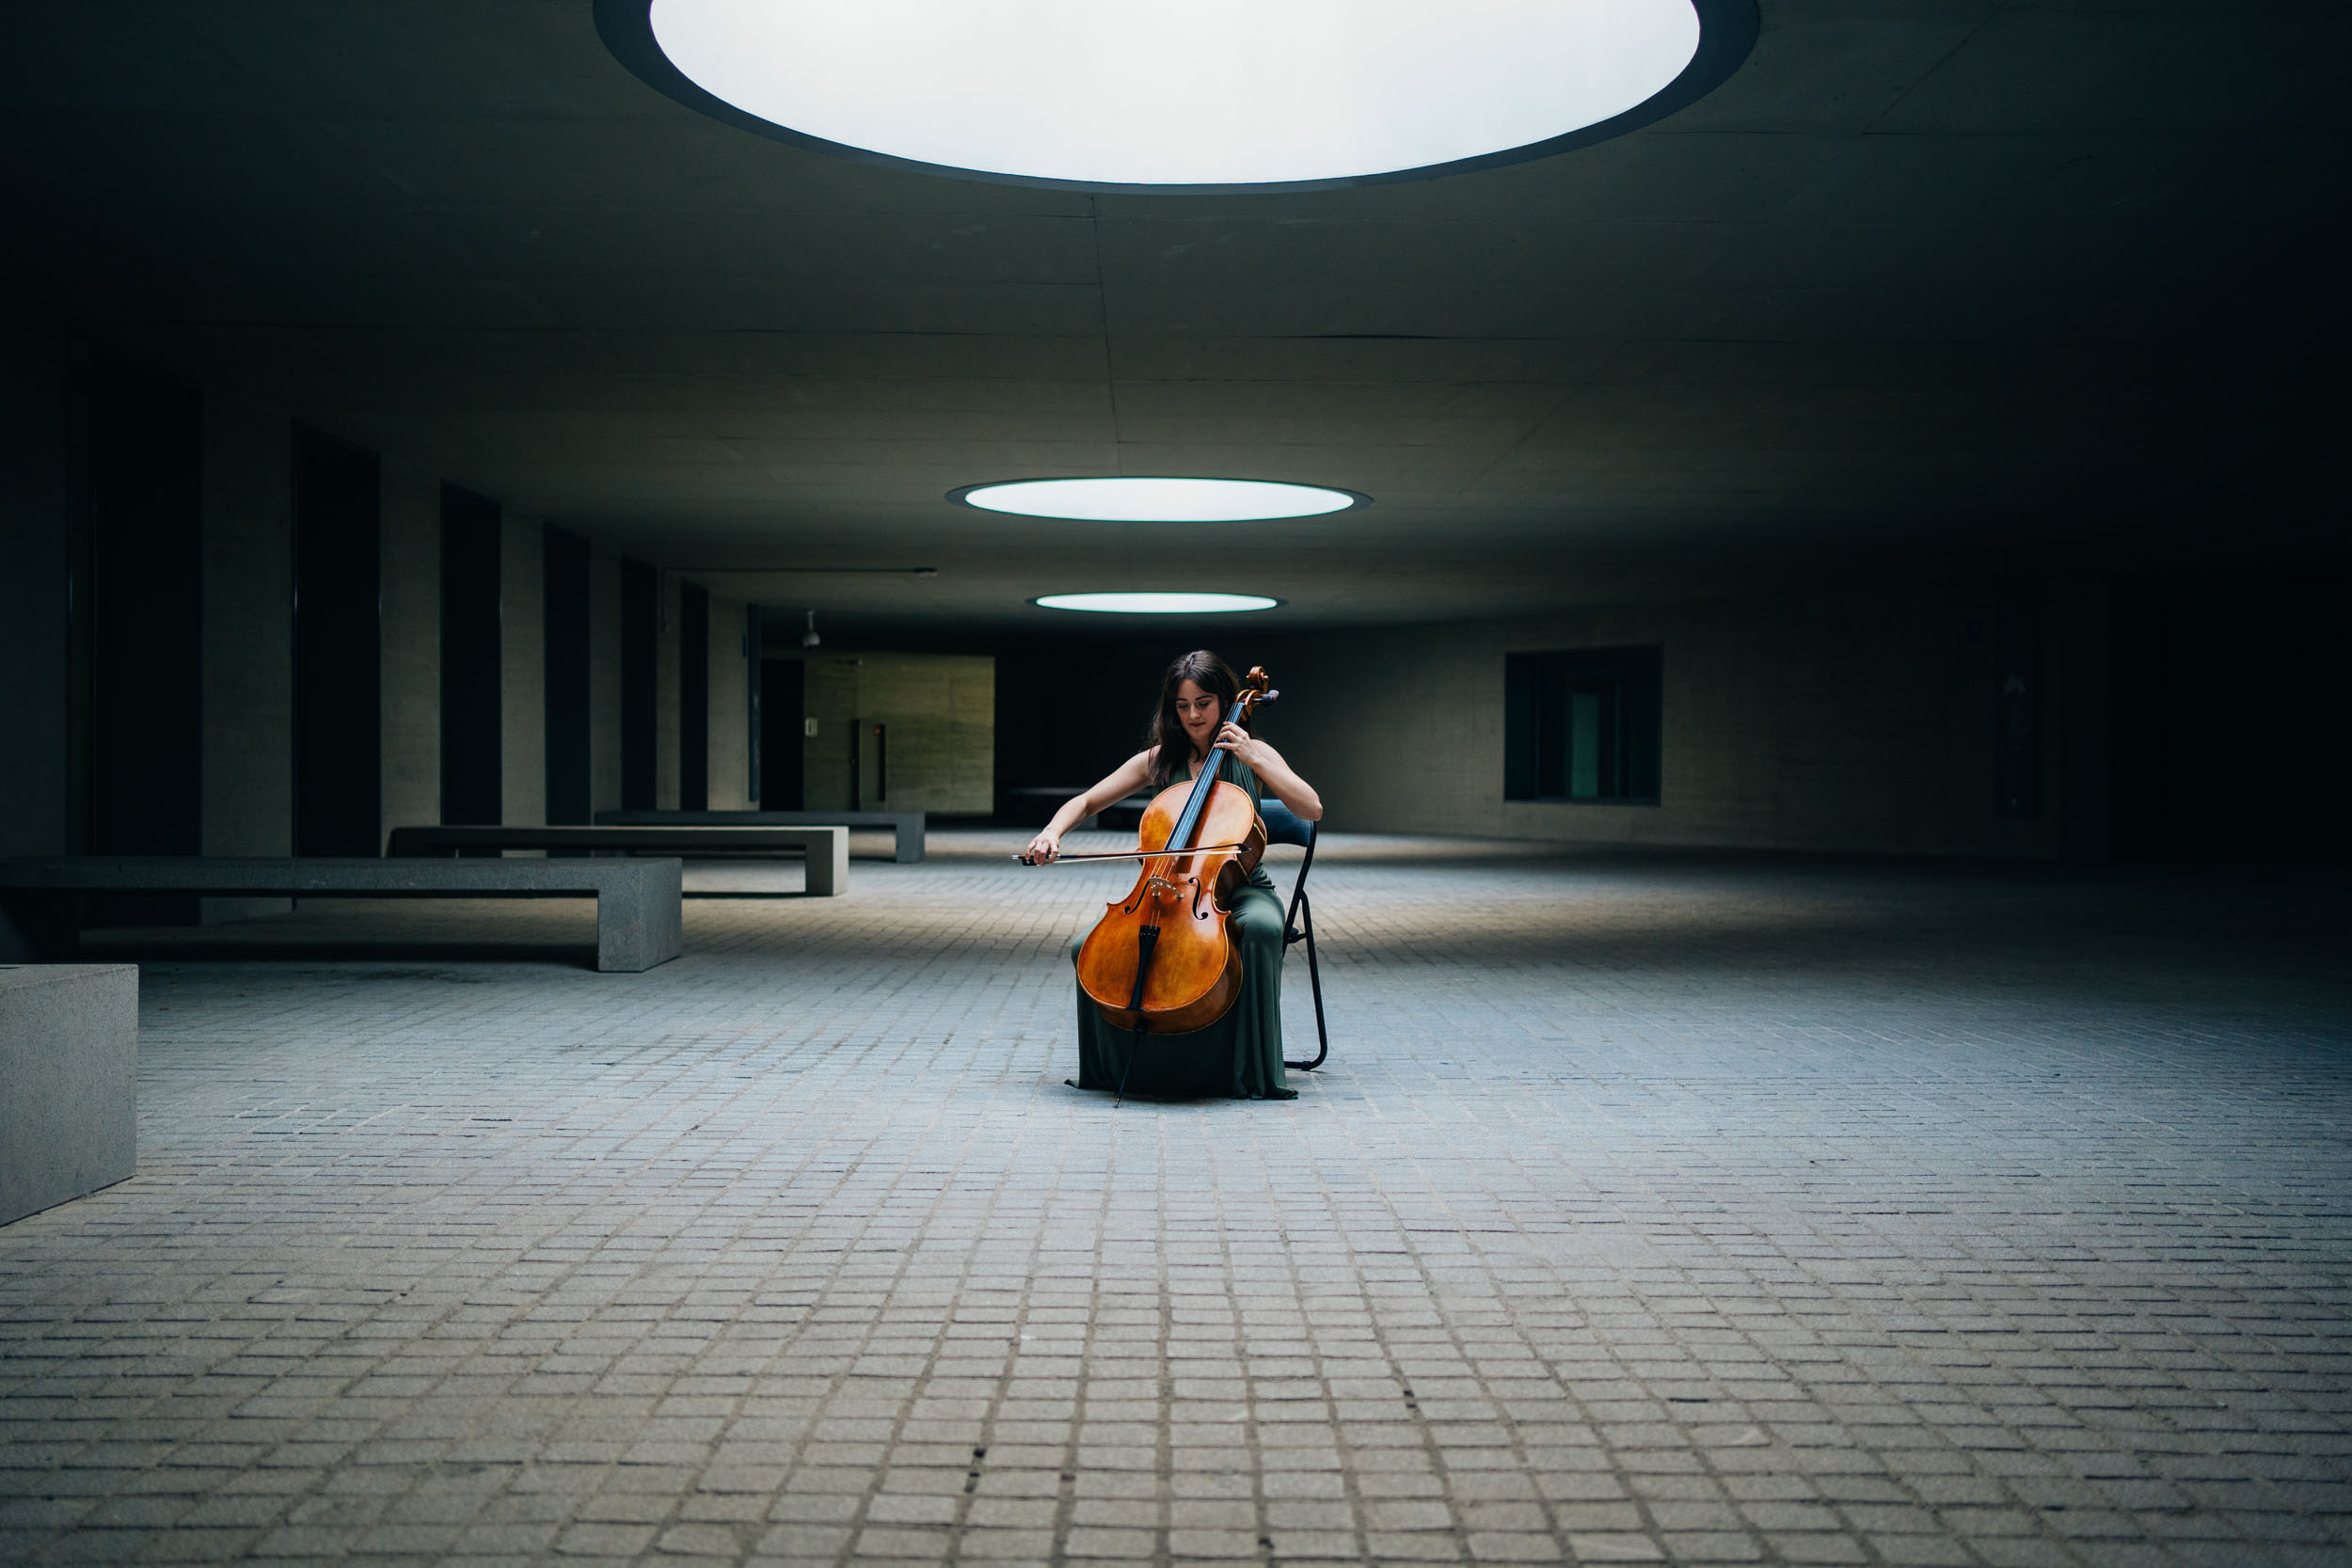 Cellist playing